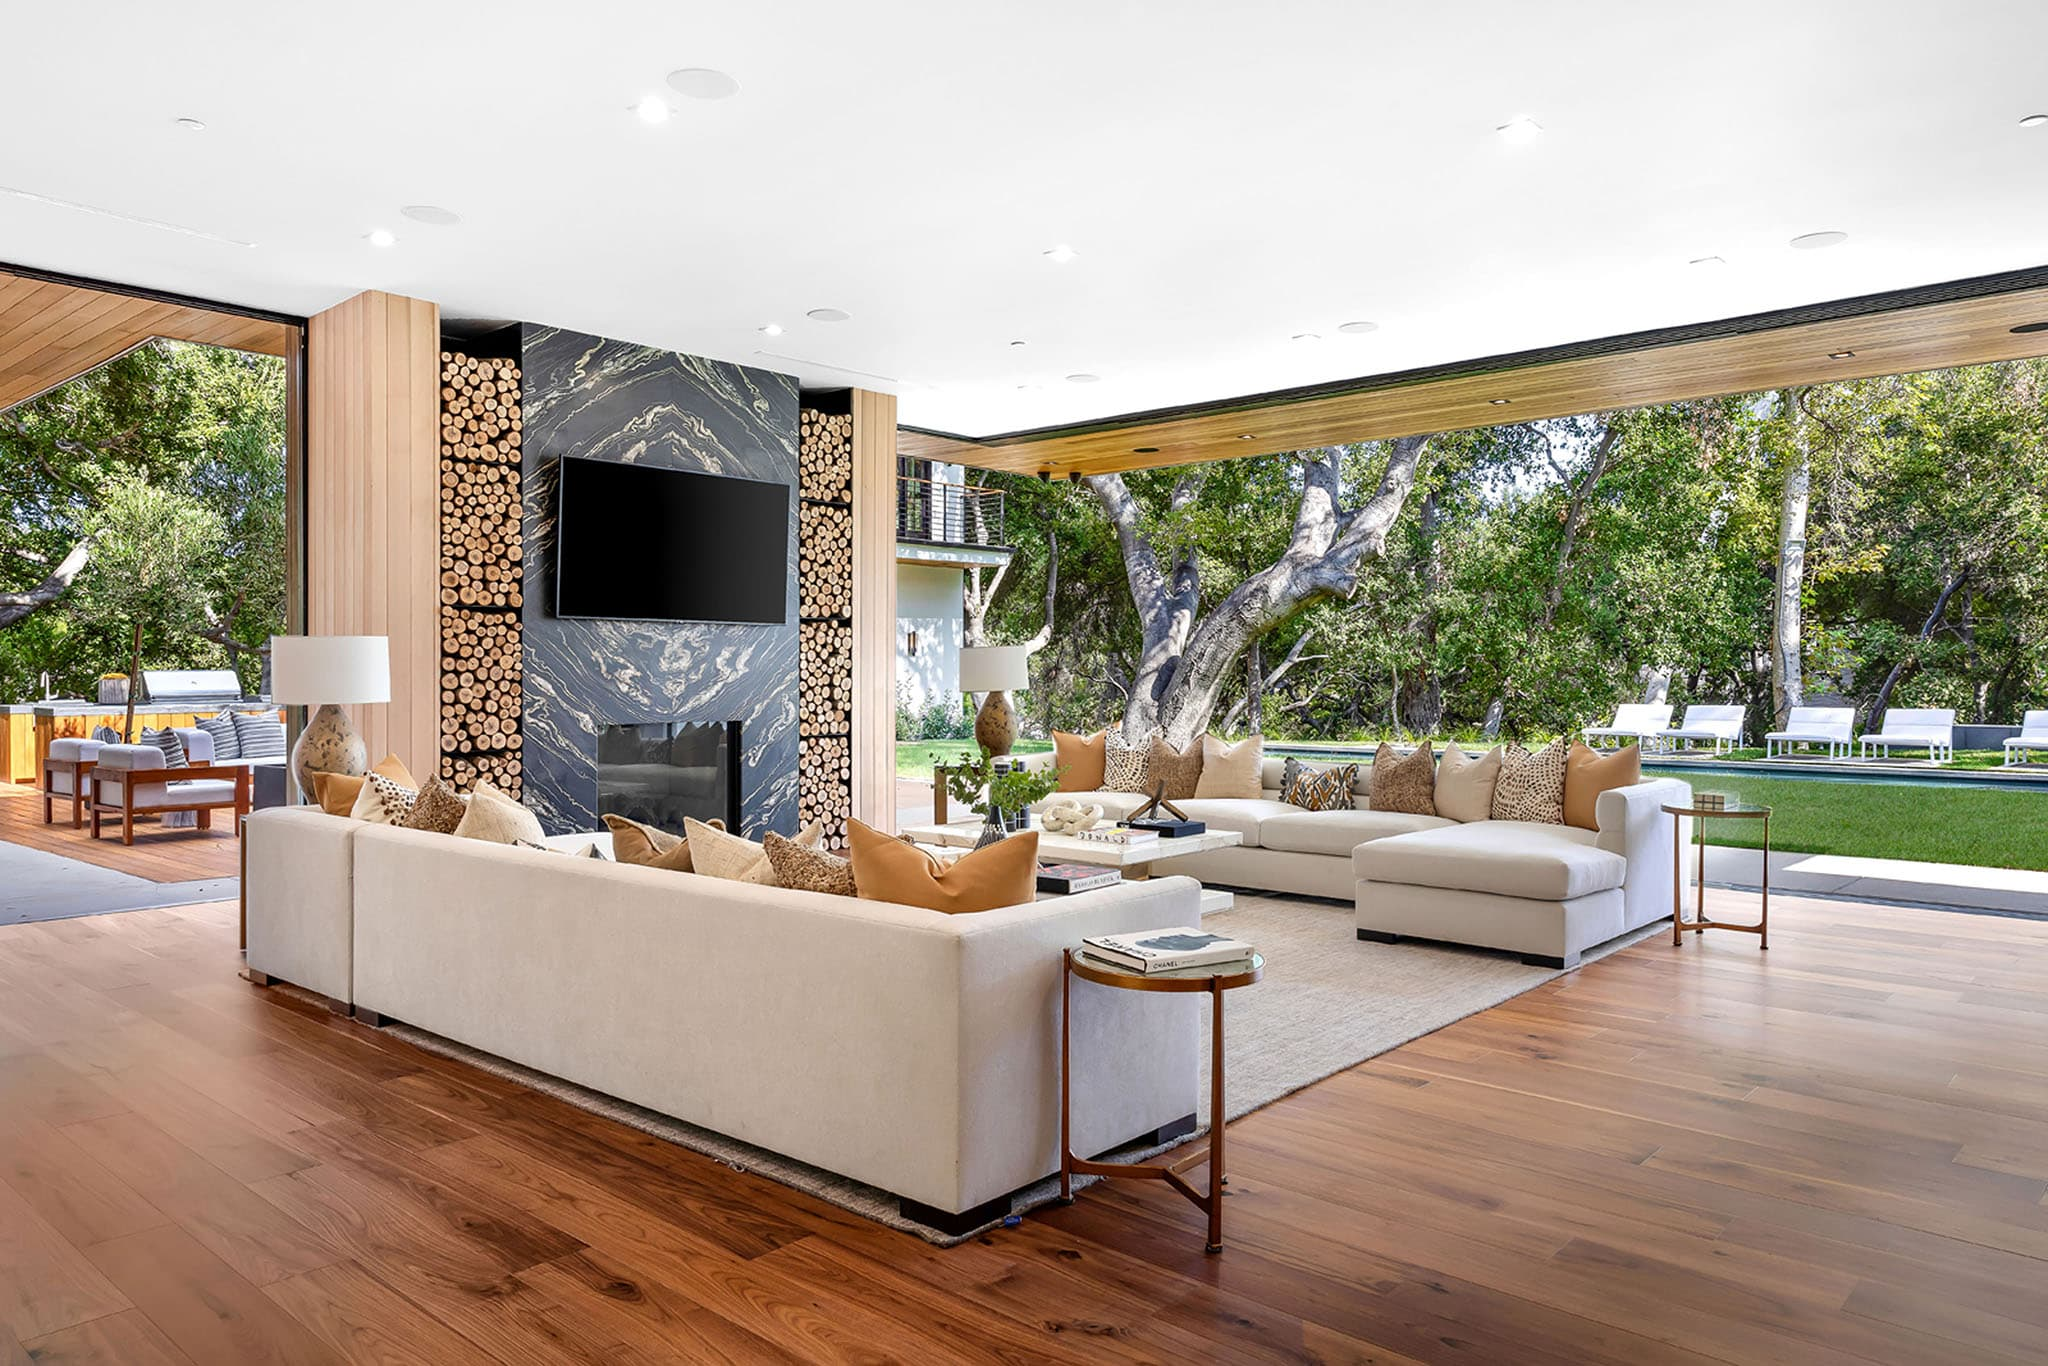 The 15,000 square-foot Encino, California mansion is designed by famed designer and A-lister favorite Jae Omar